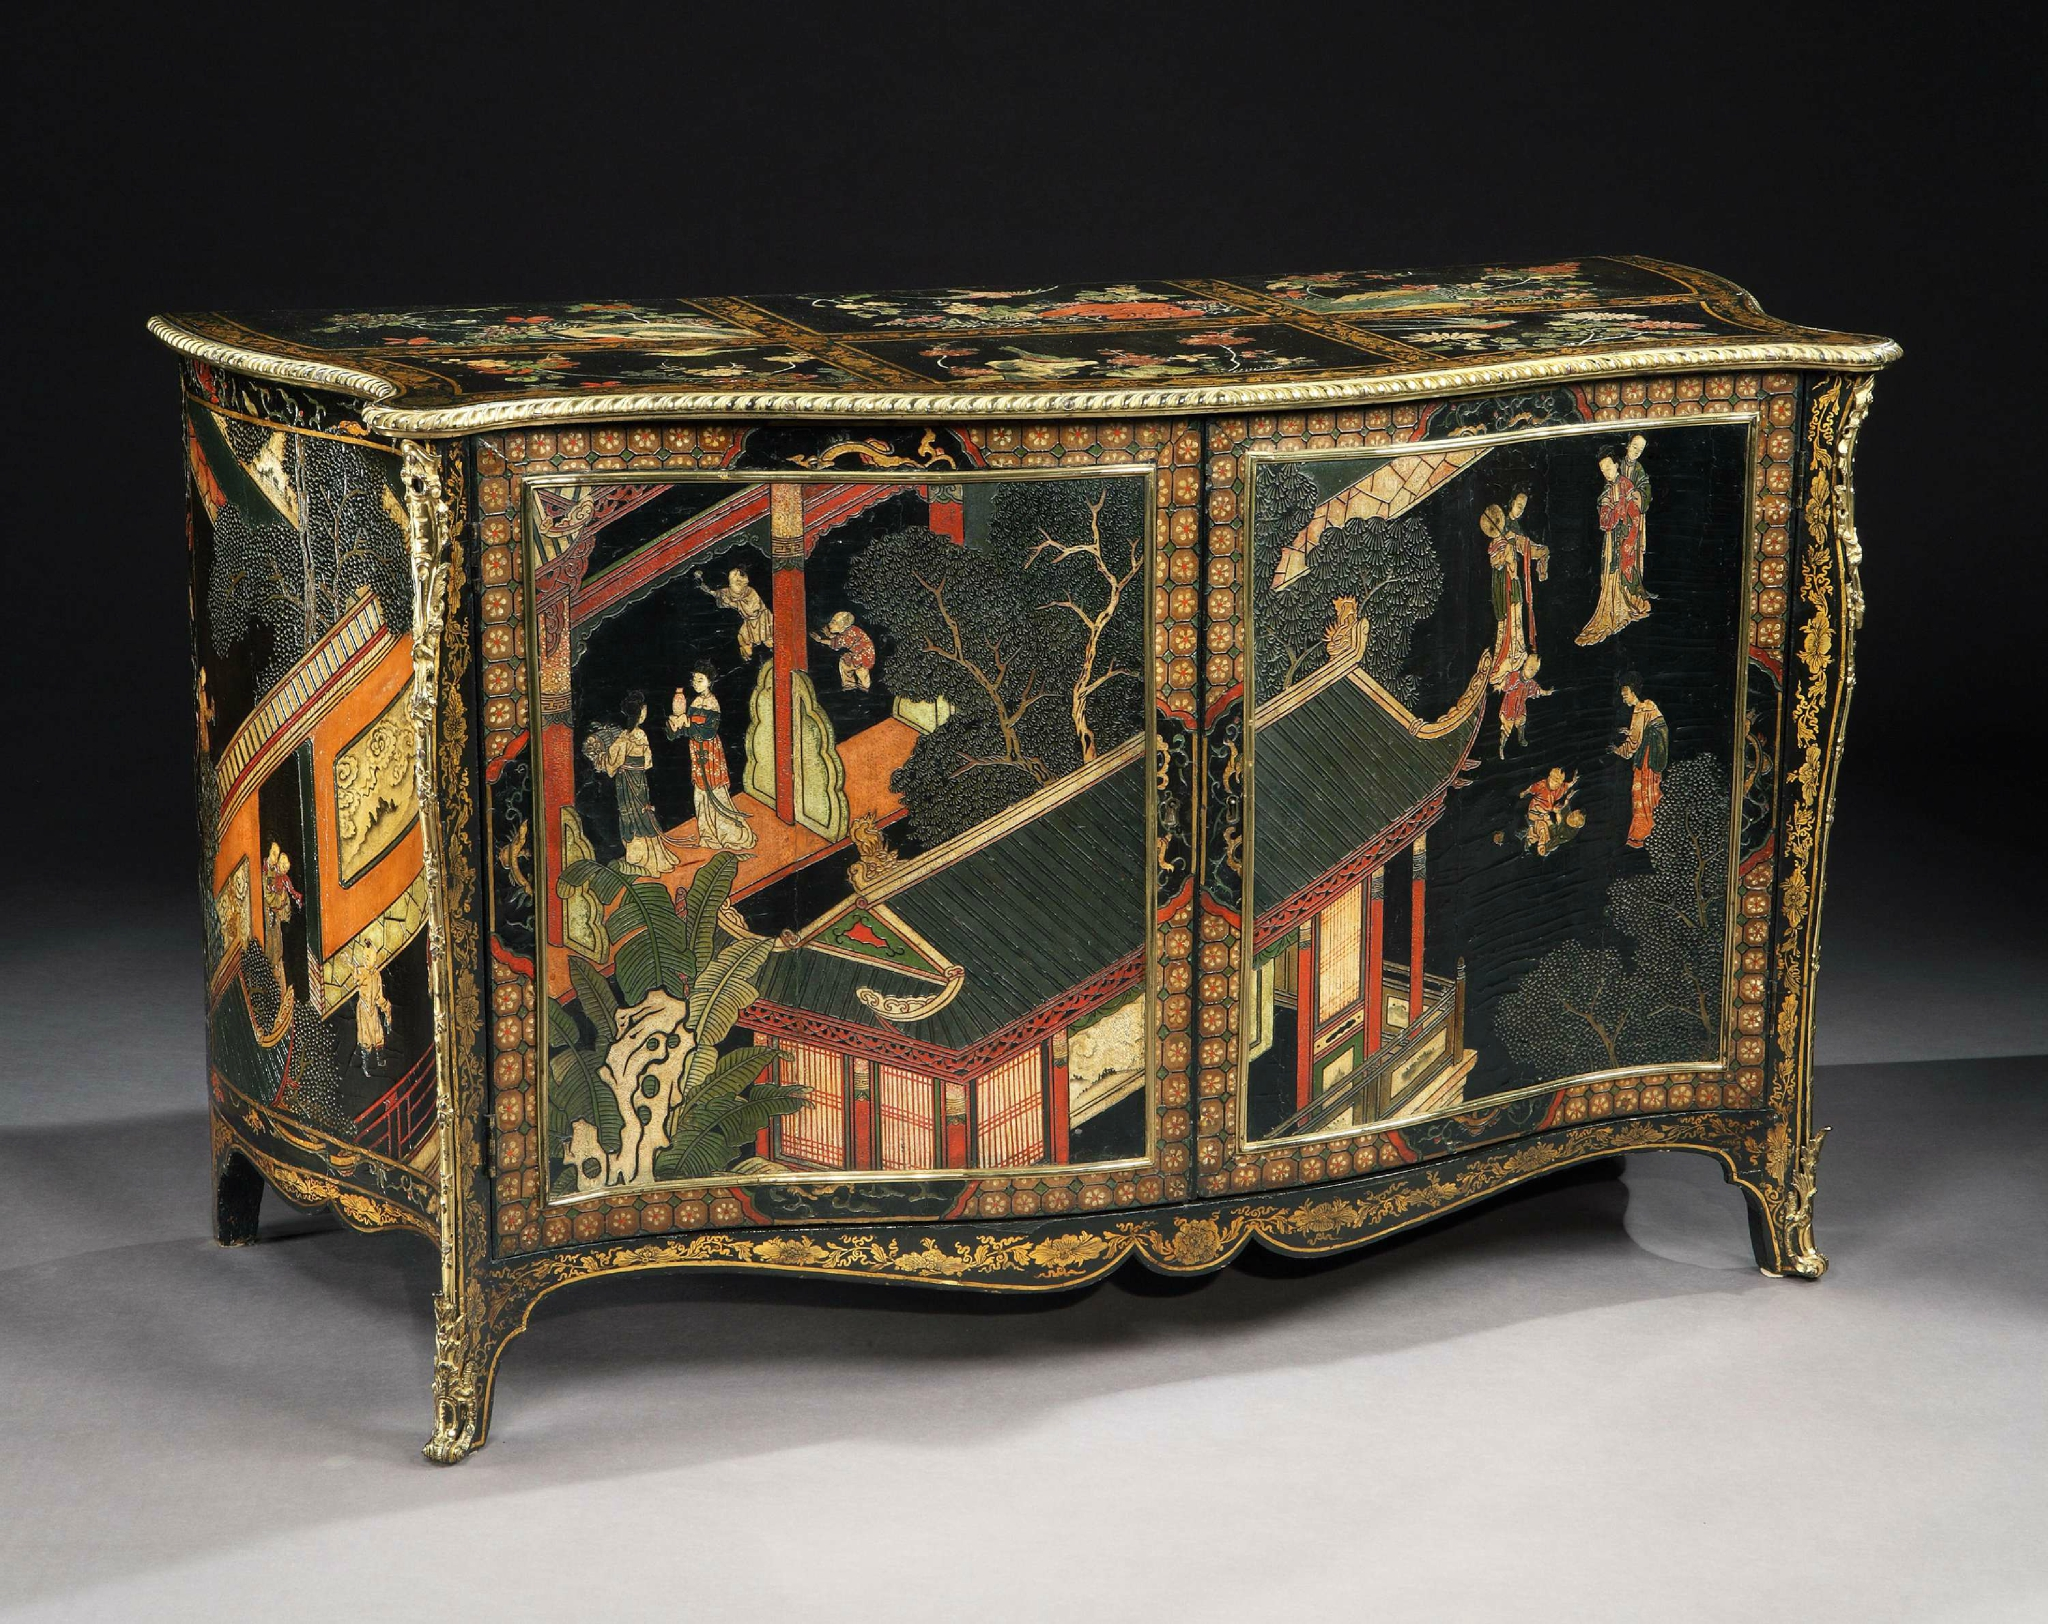 a magnificent pair of george iii period ormolu mounted coromandel lacquer and black gilt japanned serpentine commodes